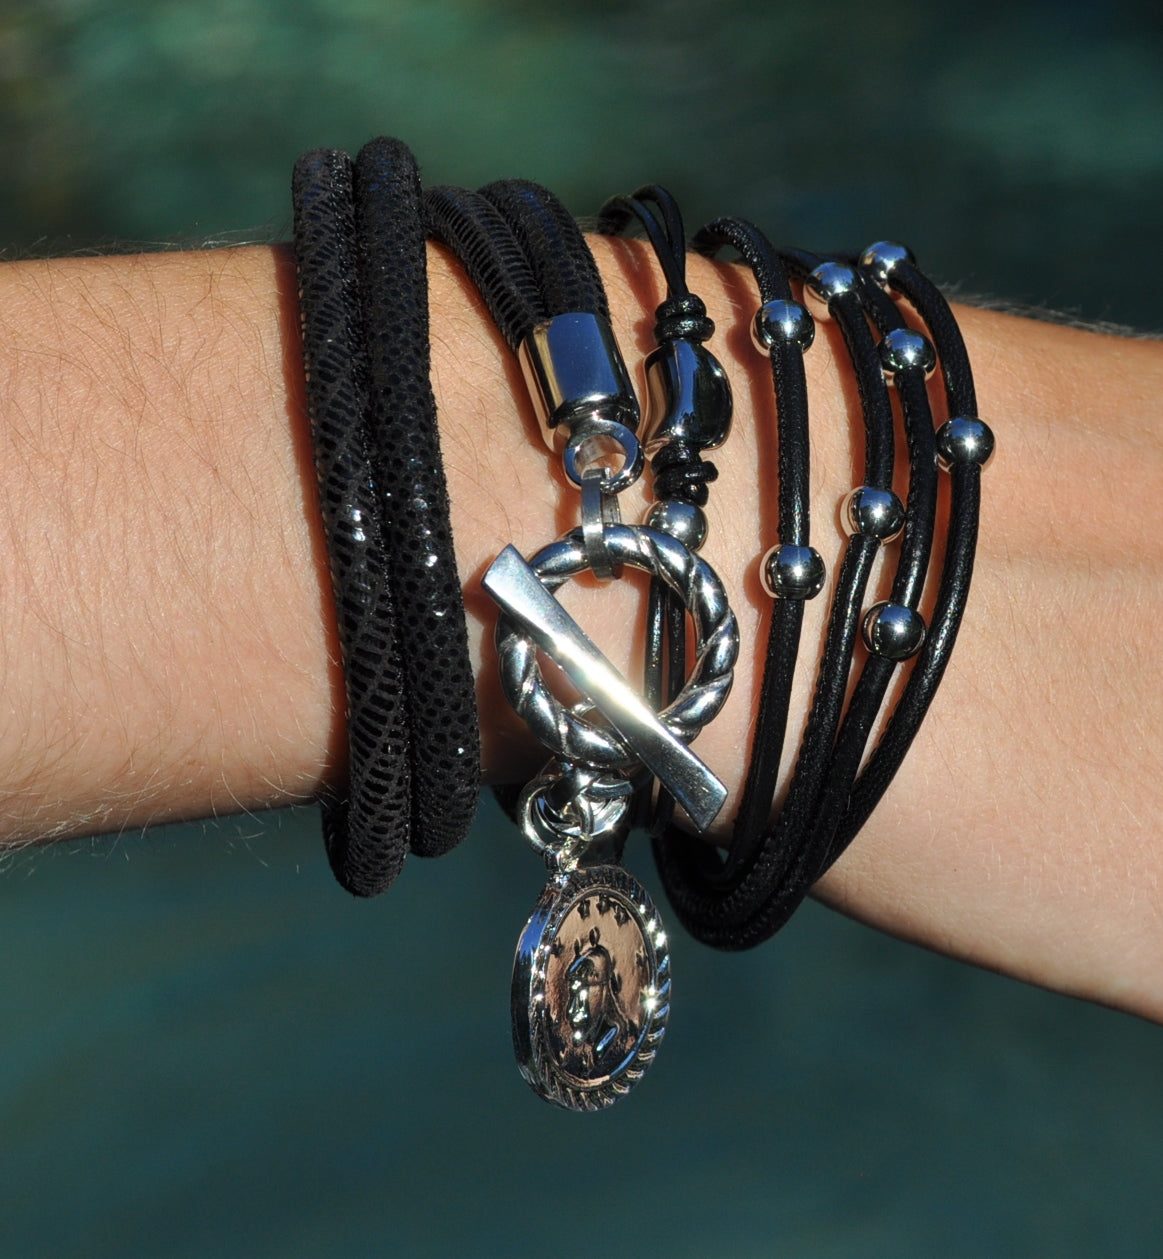 Bracelet Black Leather  heart charm Stainless Steel - Tyler Bracelet